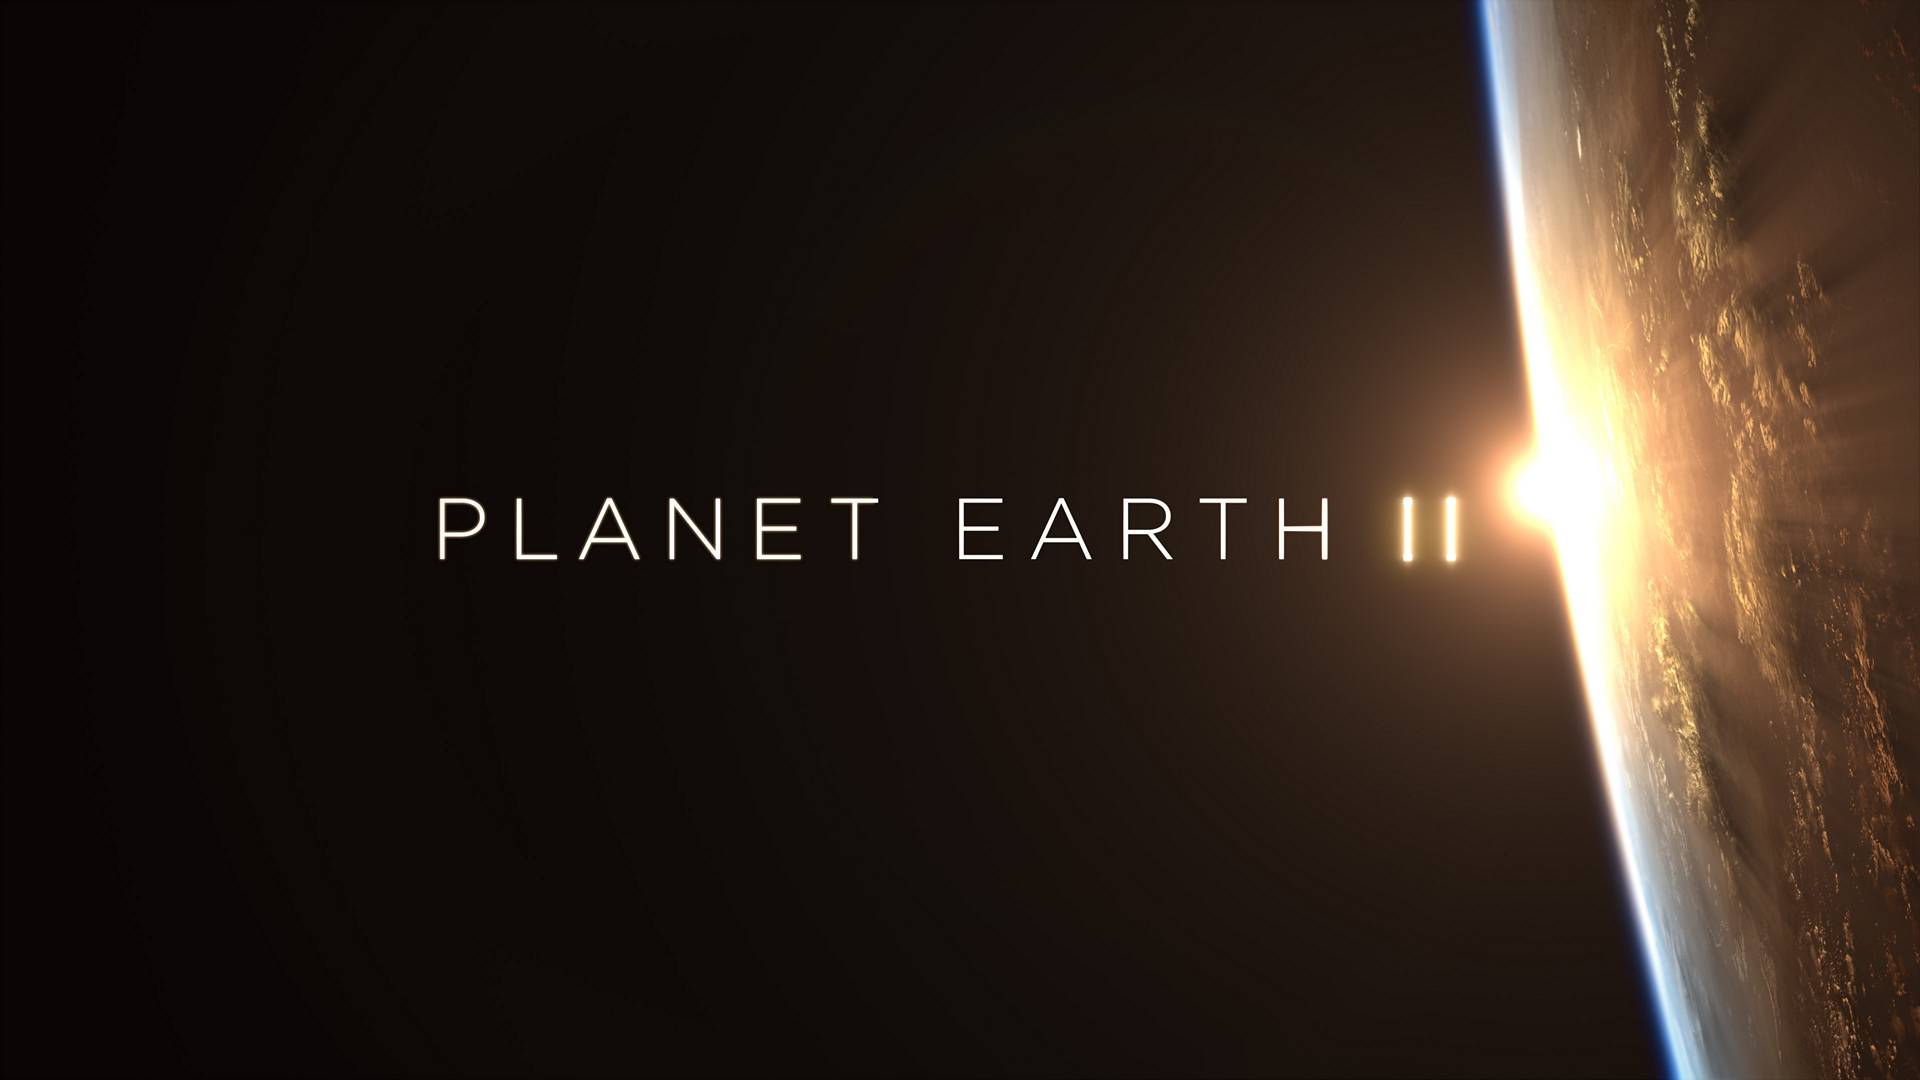 Planet earth II featured image